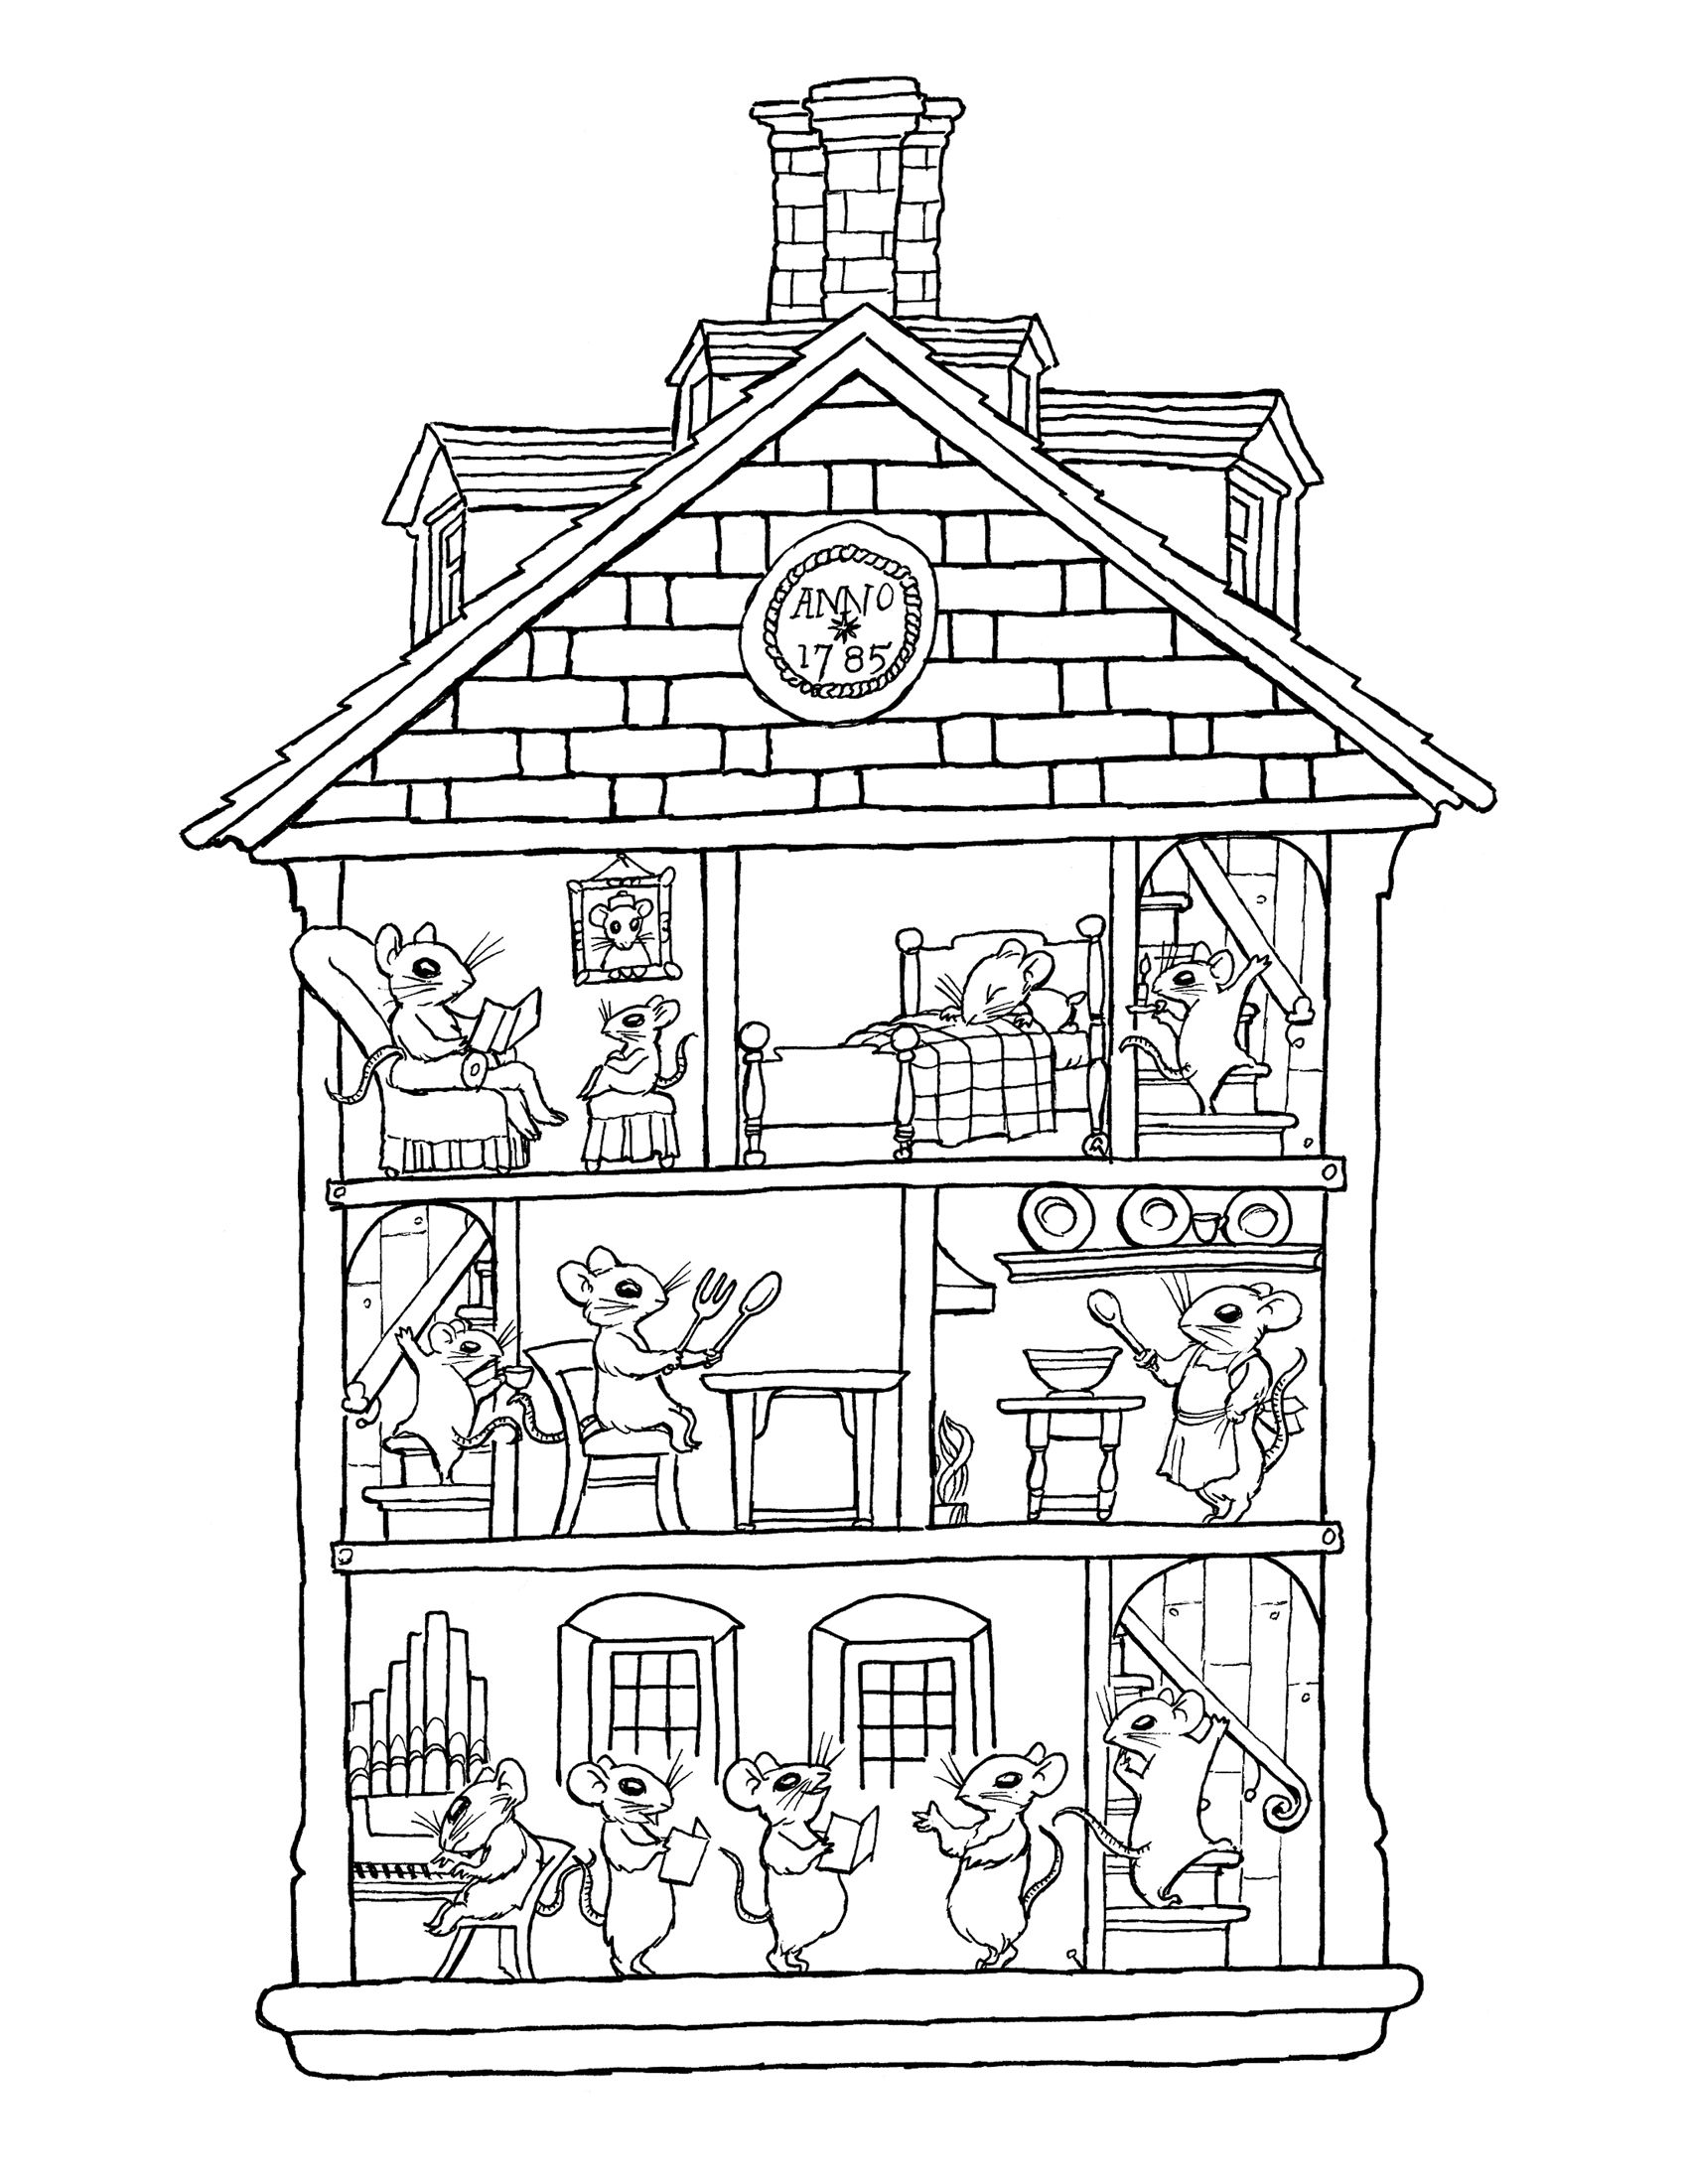 Houses And Homes Coloring Pages For Preschool Kindergarten And Elementary School Children To